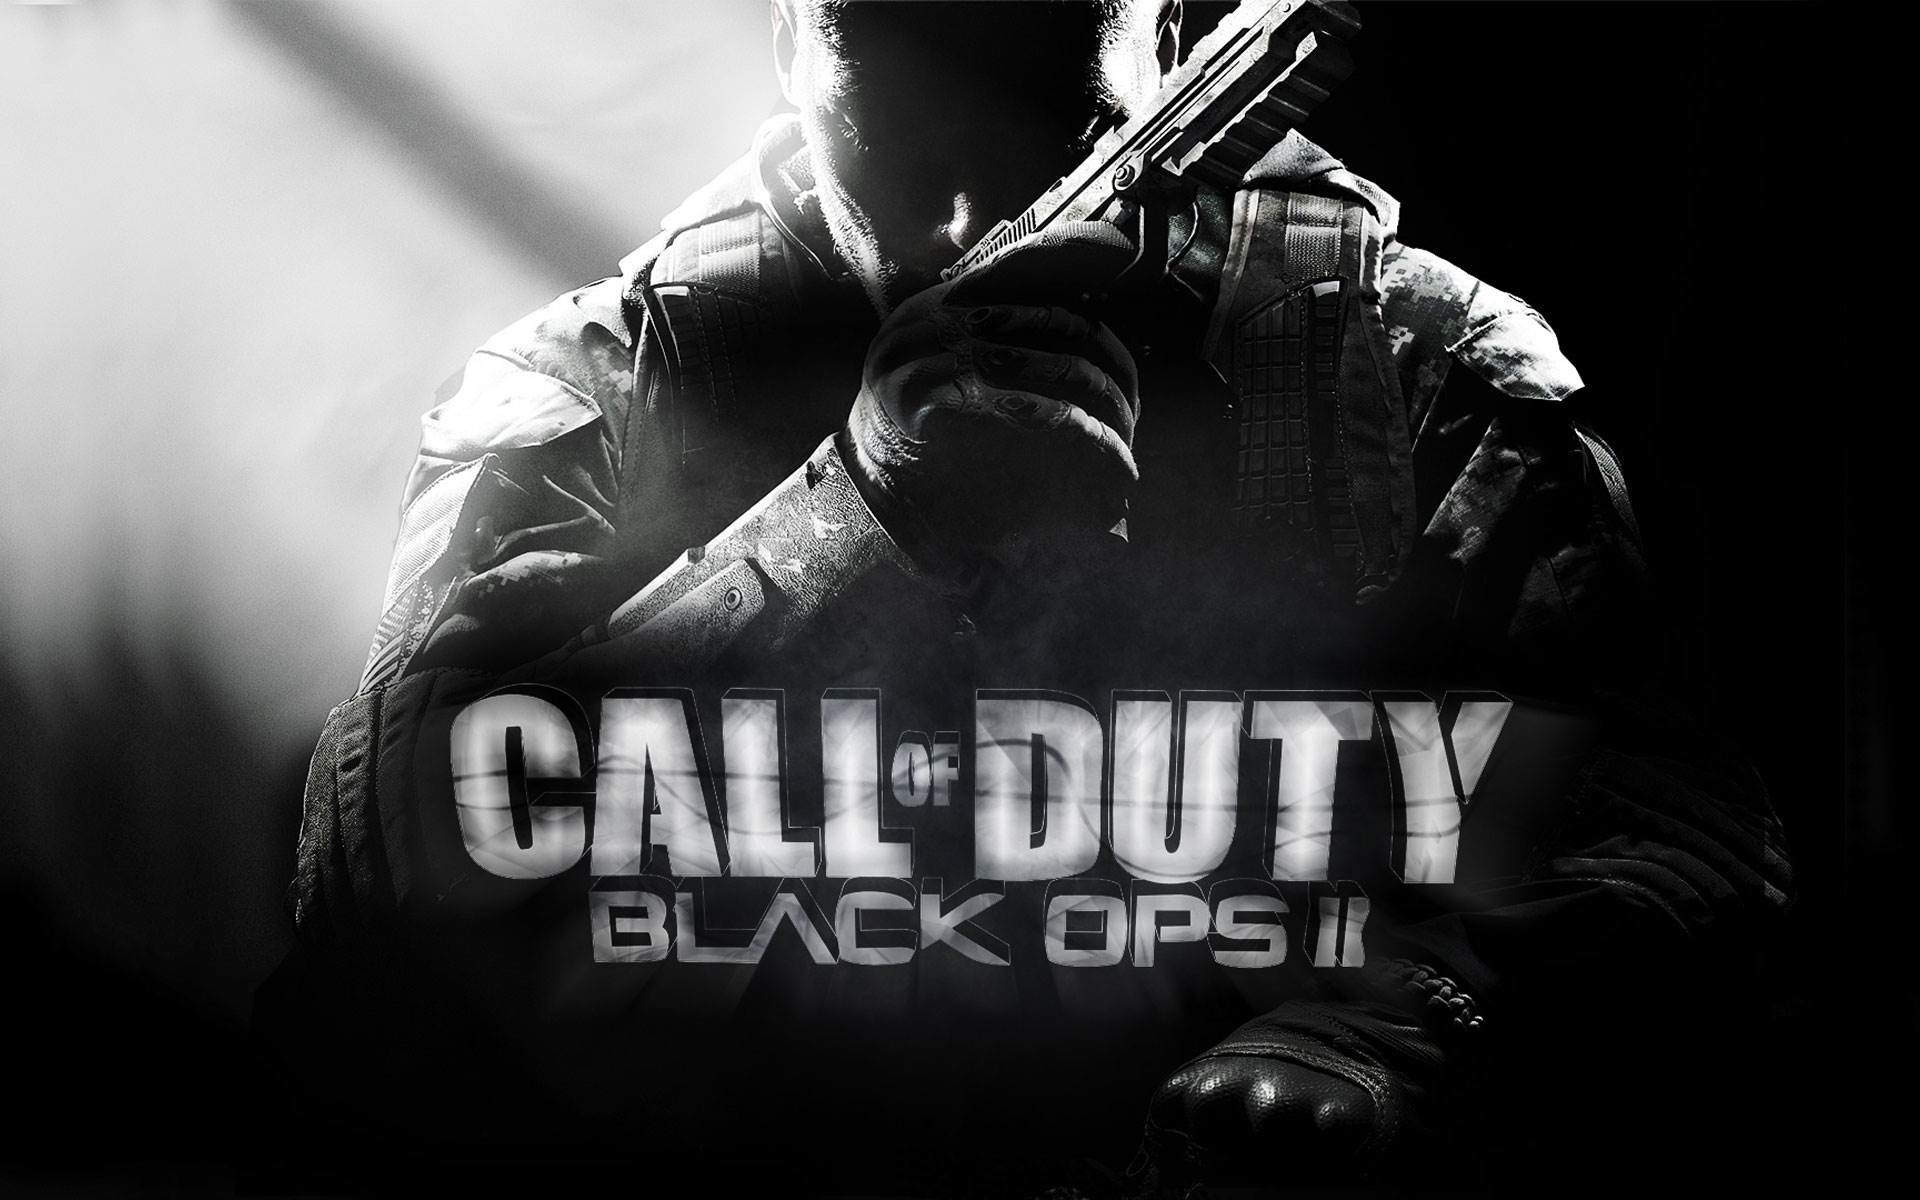 Call Of Duty Wallpapers Black Ops 2 Wallpapers) – Adorable Wallpapers